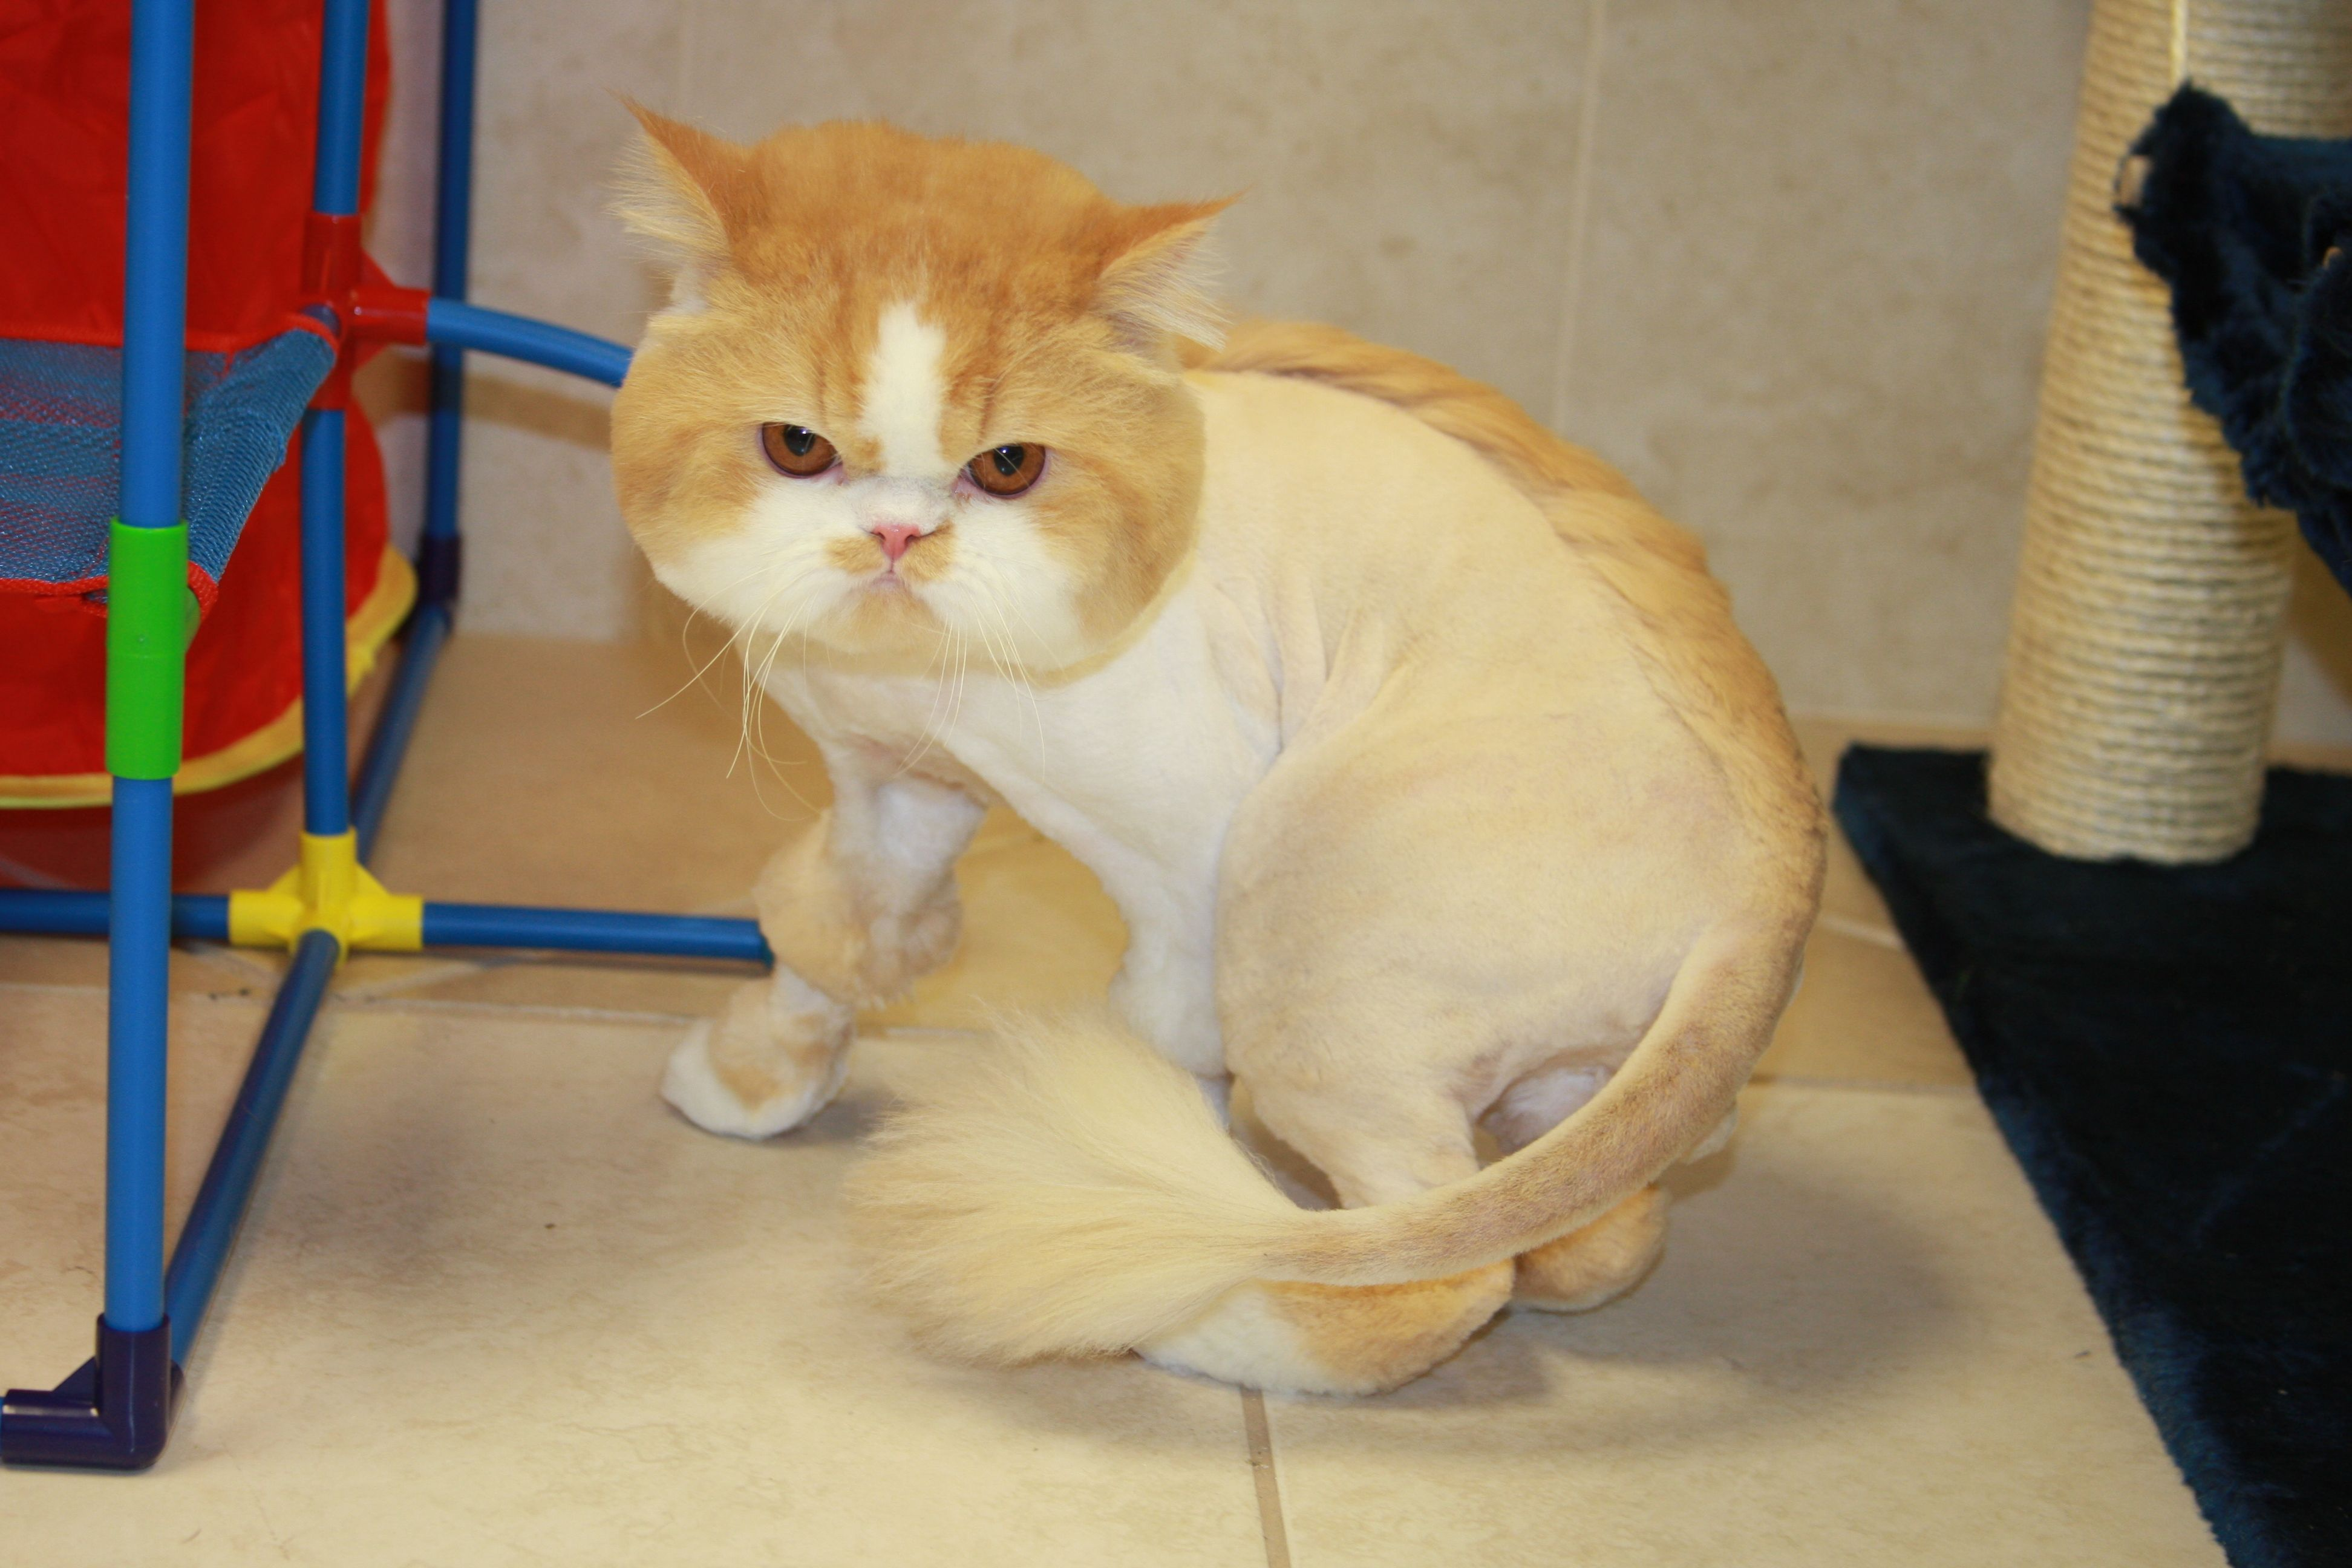 Lion cut Cat grooming Pinterest Lions, Persian cats